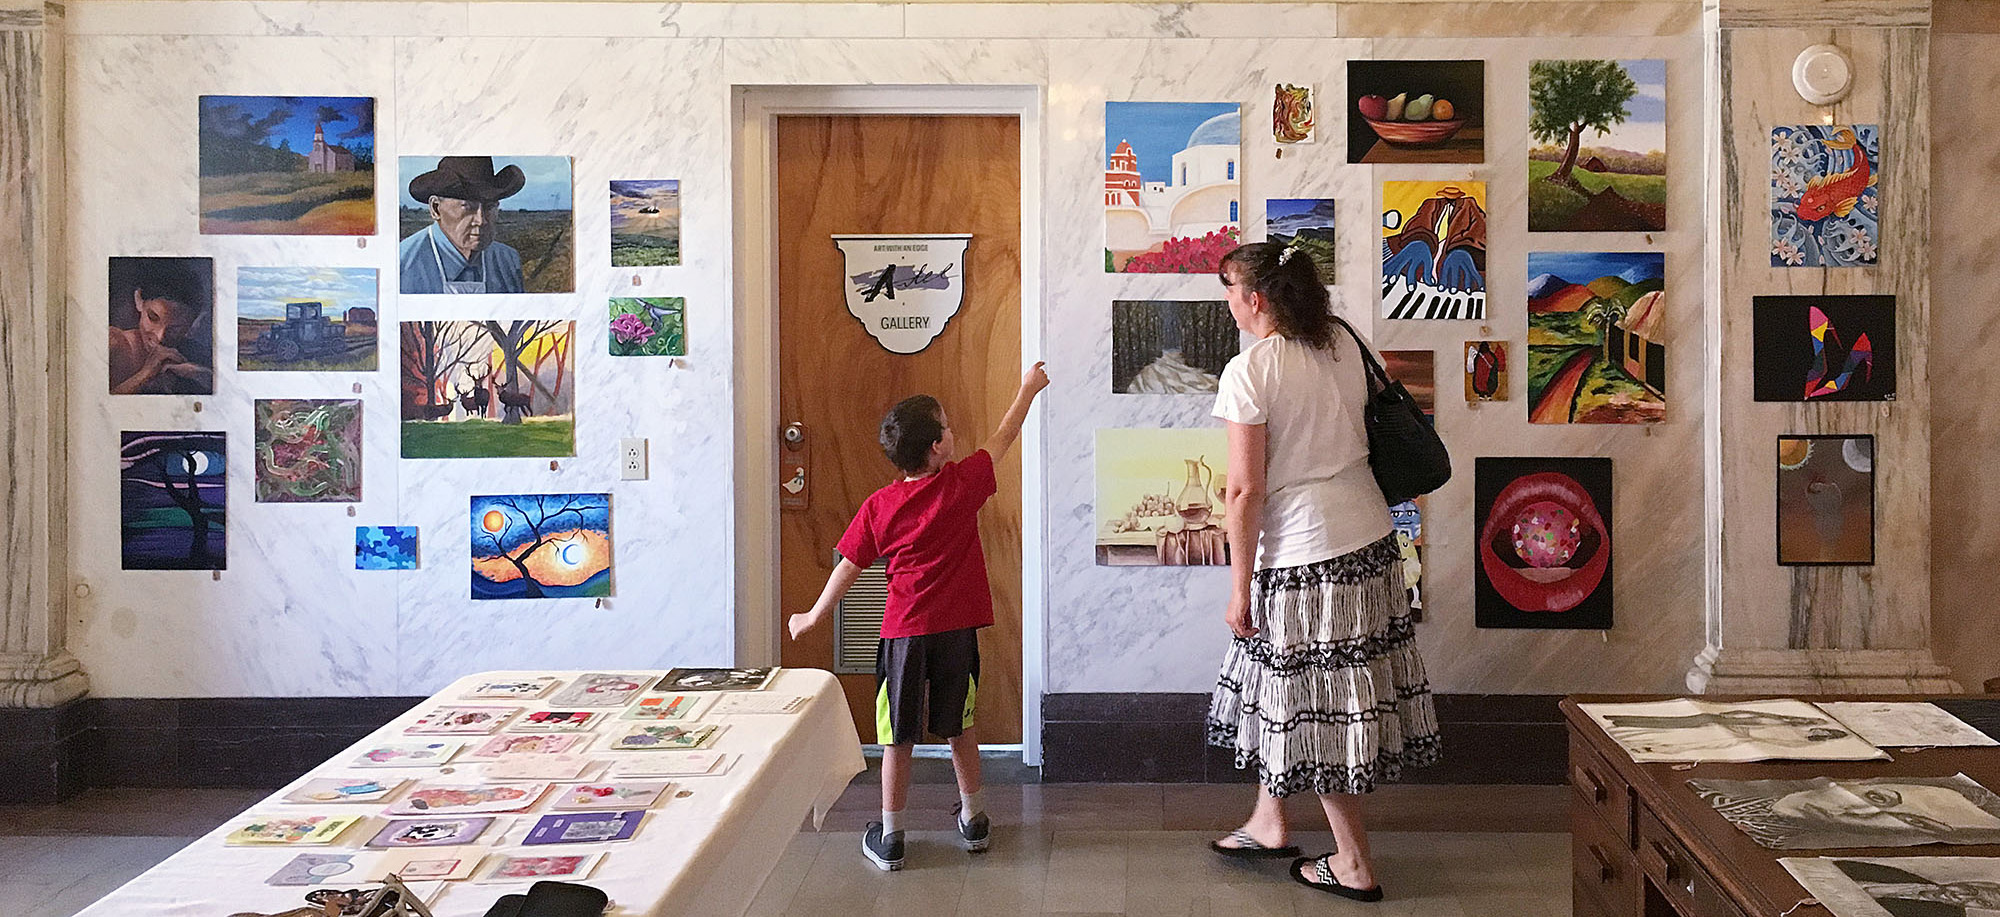 A family looks at artwork on display at Artel Gallery in Pensacola, FL.